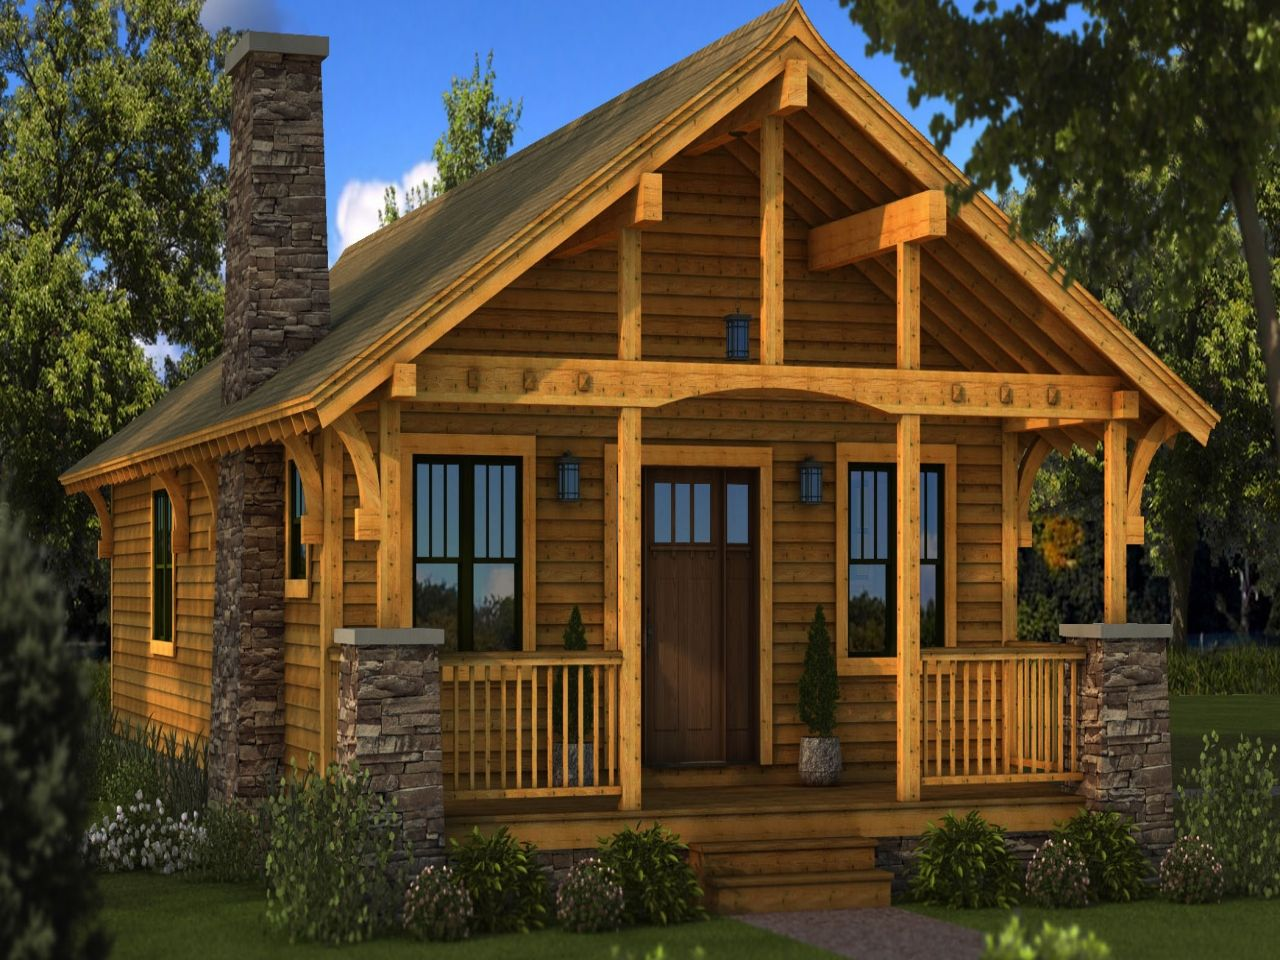 Small log cabin homes plans one story cabin plans for Small log cabin plans